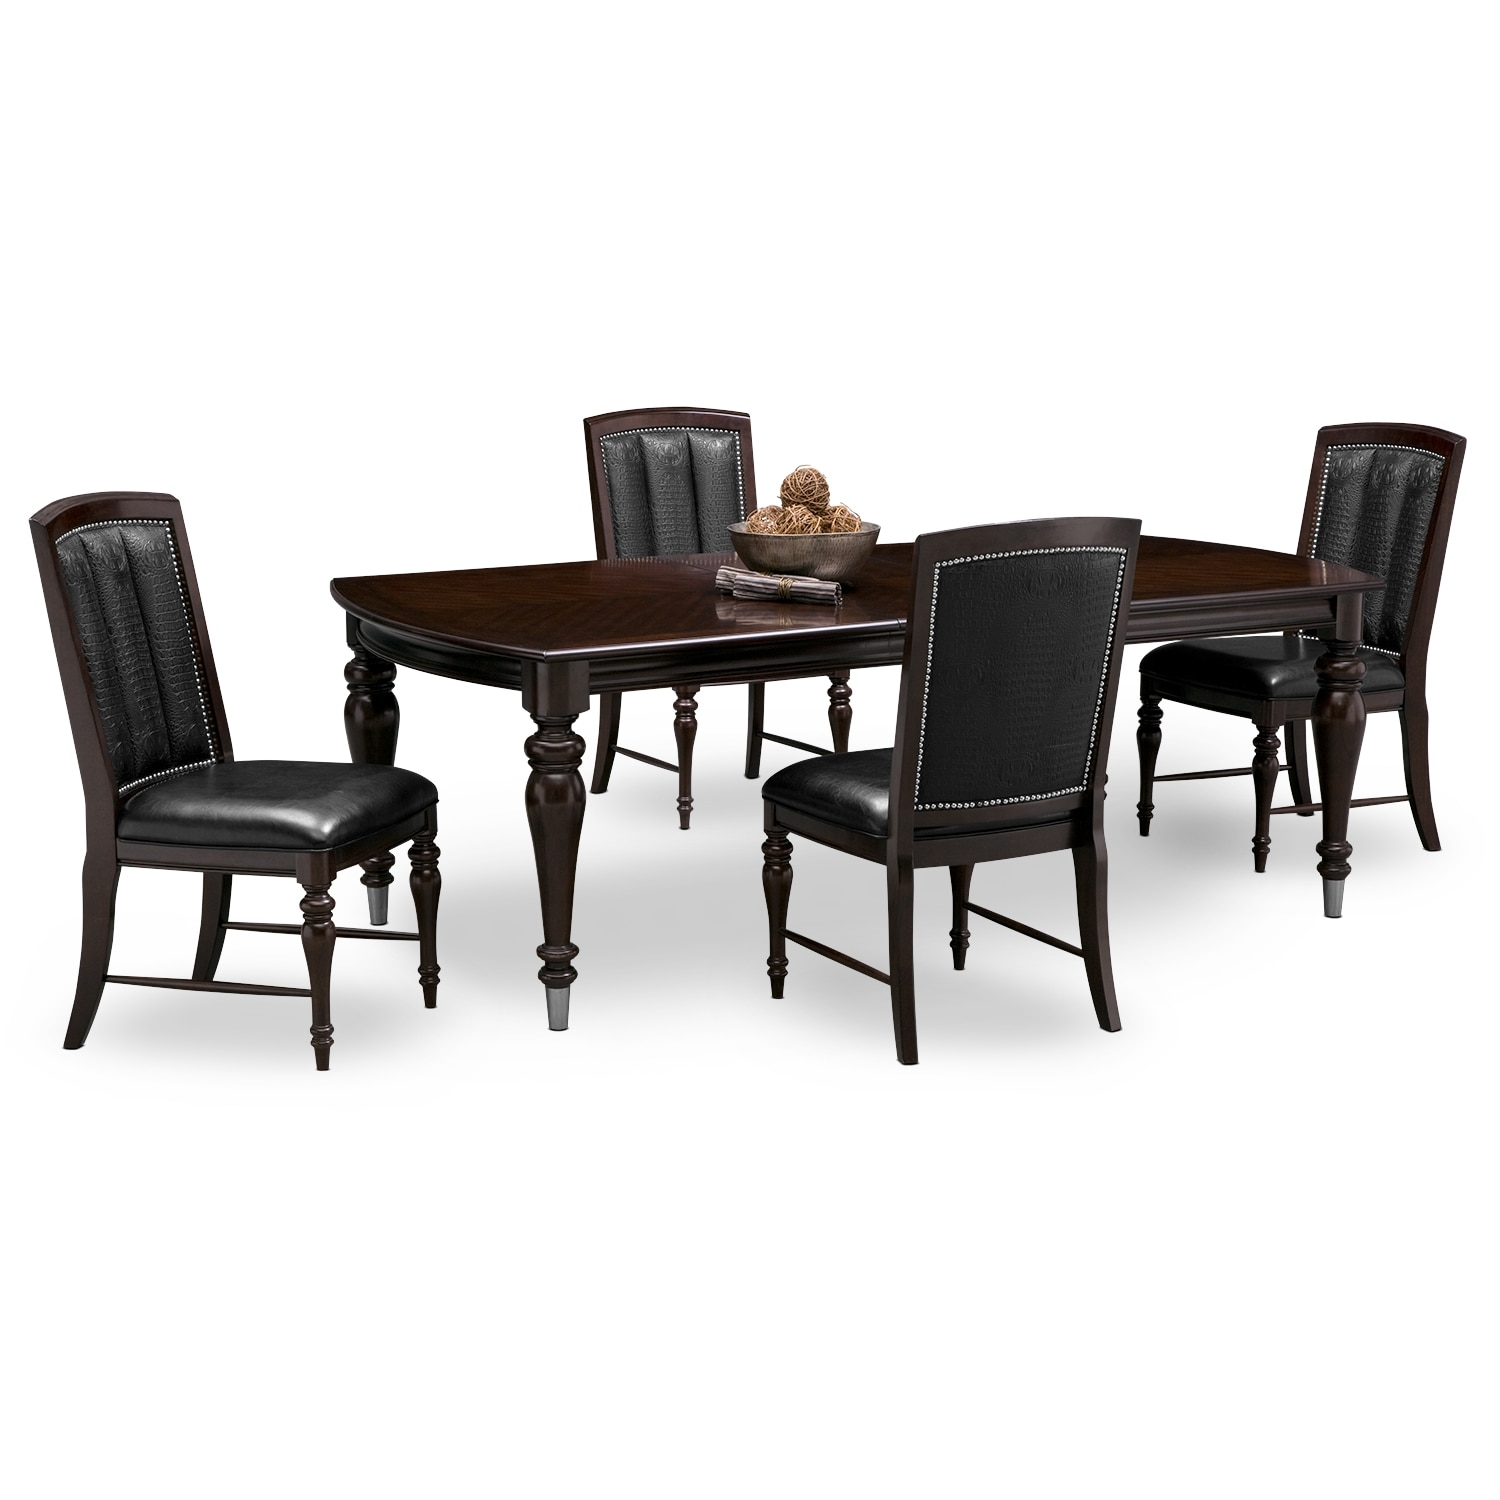 Esquire Table And 4 Chairs Cherry American Signature Furniture